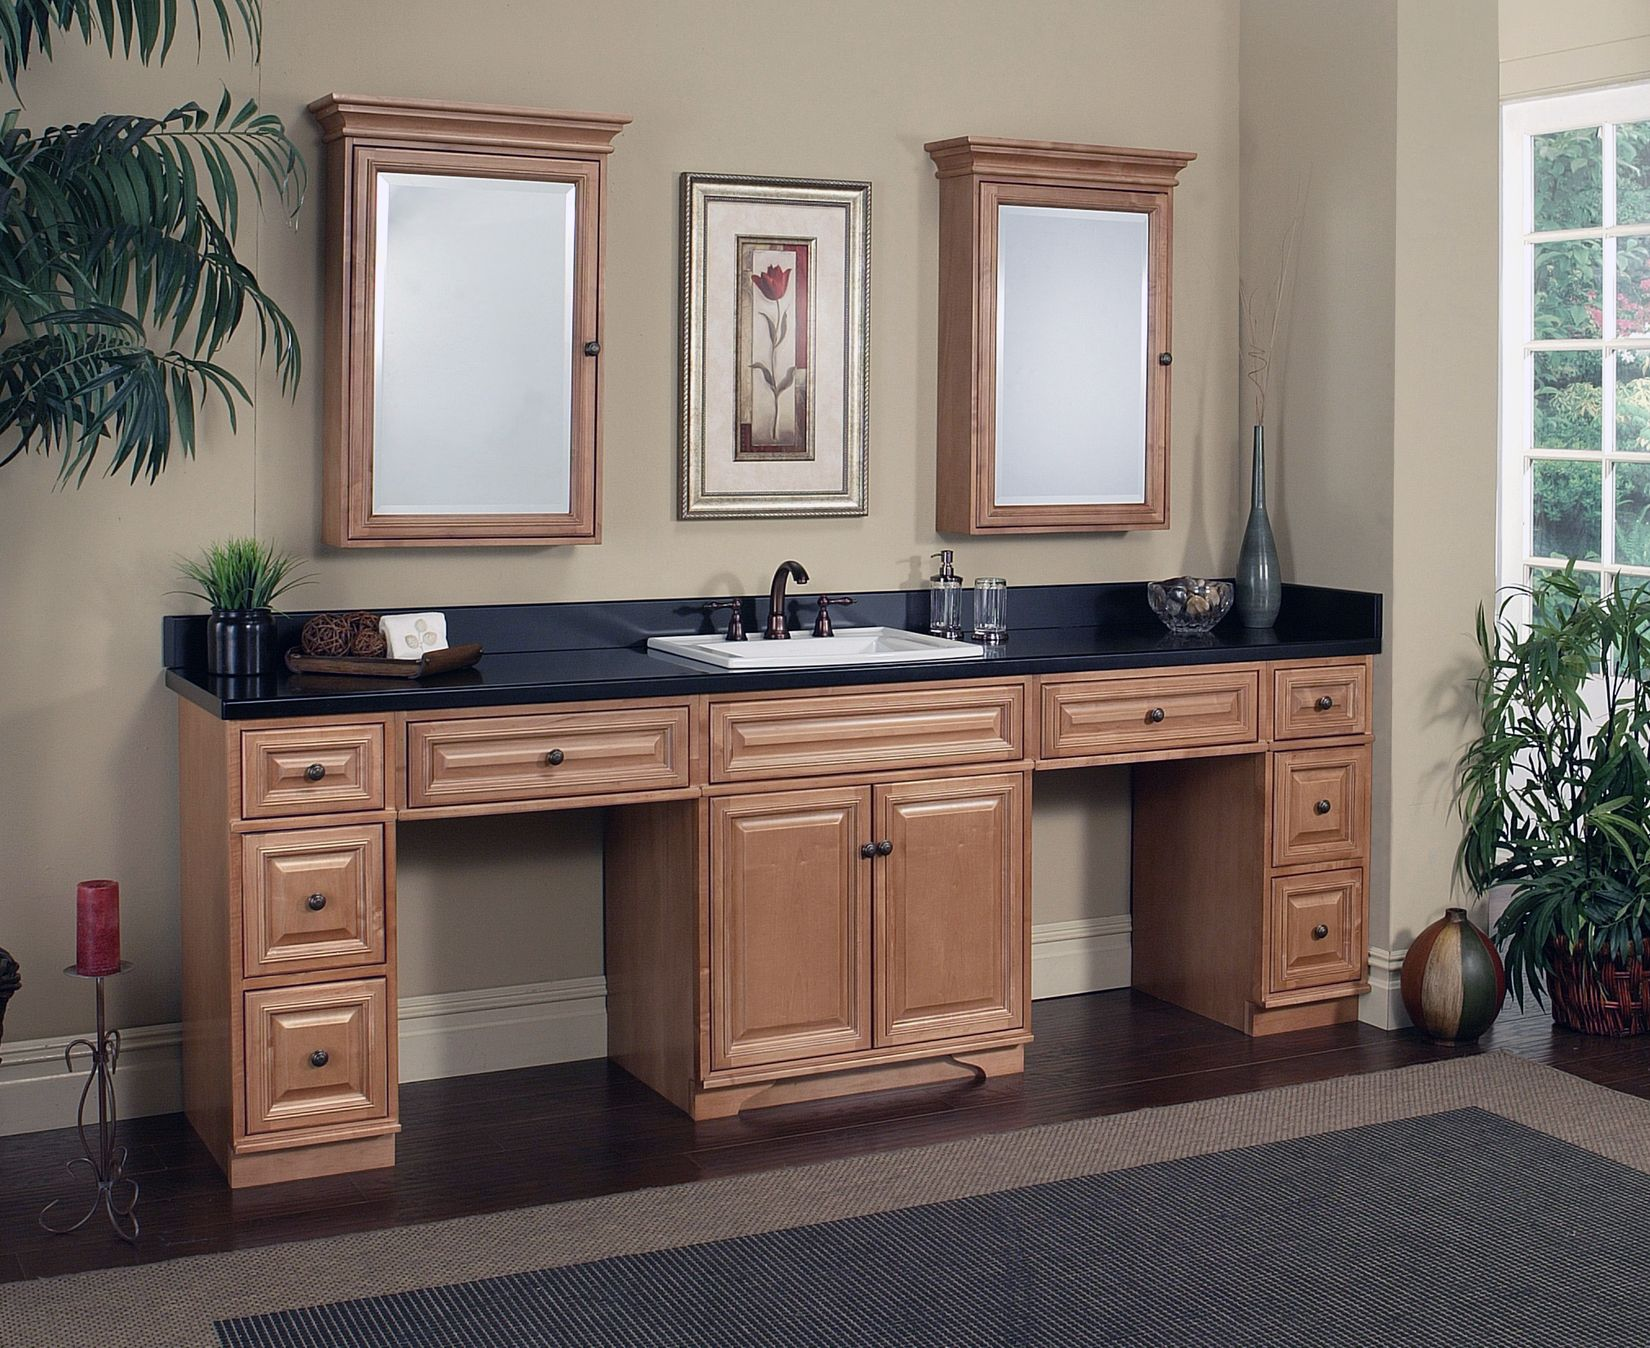 Sunnywood Kitchen Cabinets New Shaker Hill Kitchen Collection From Sunnywood Find Out More